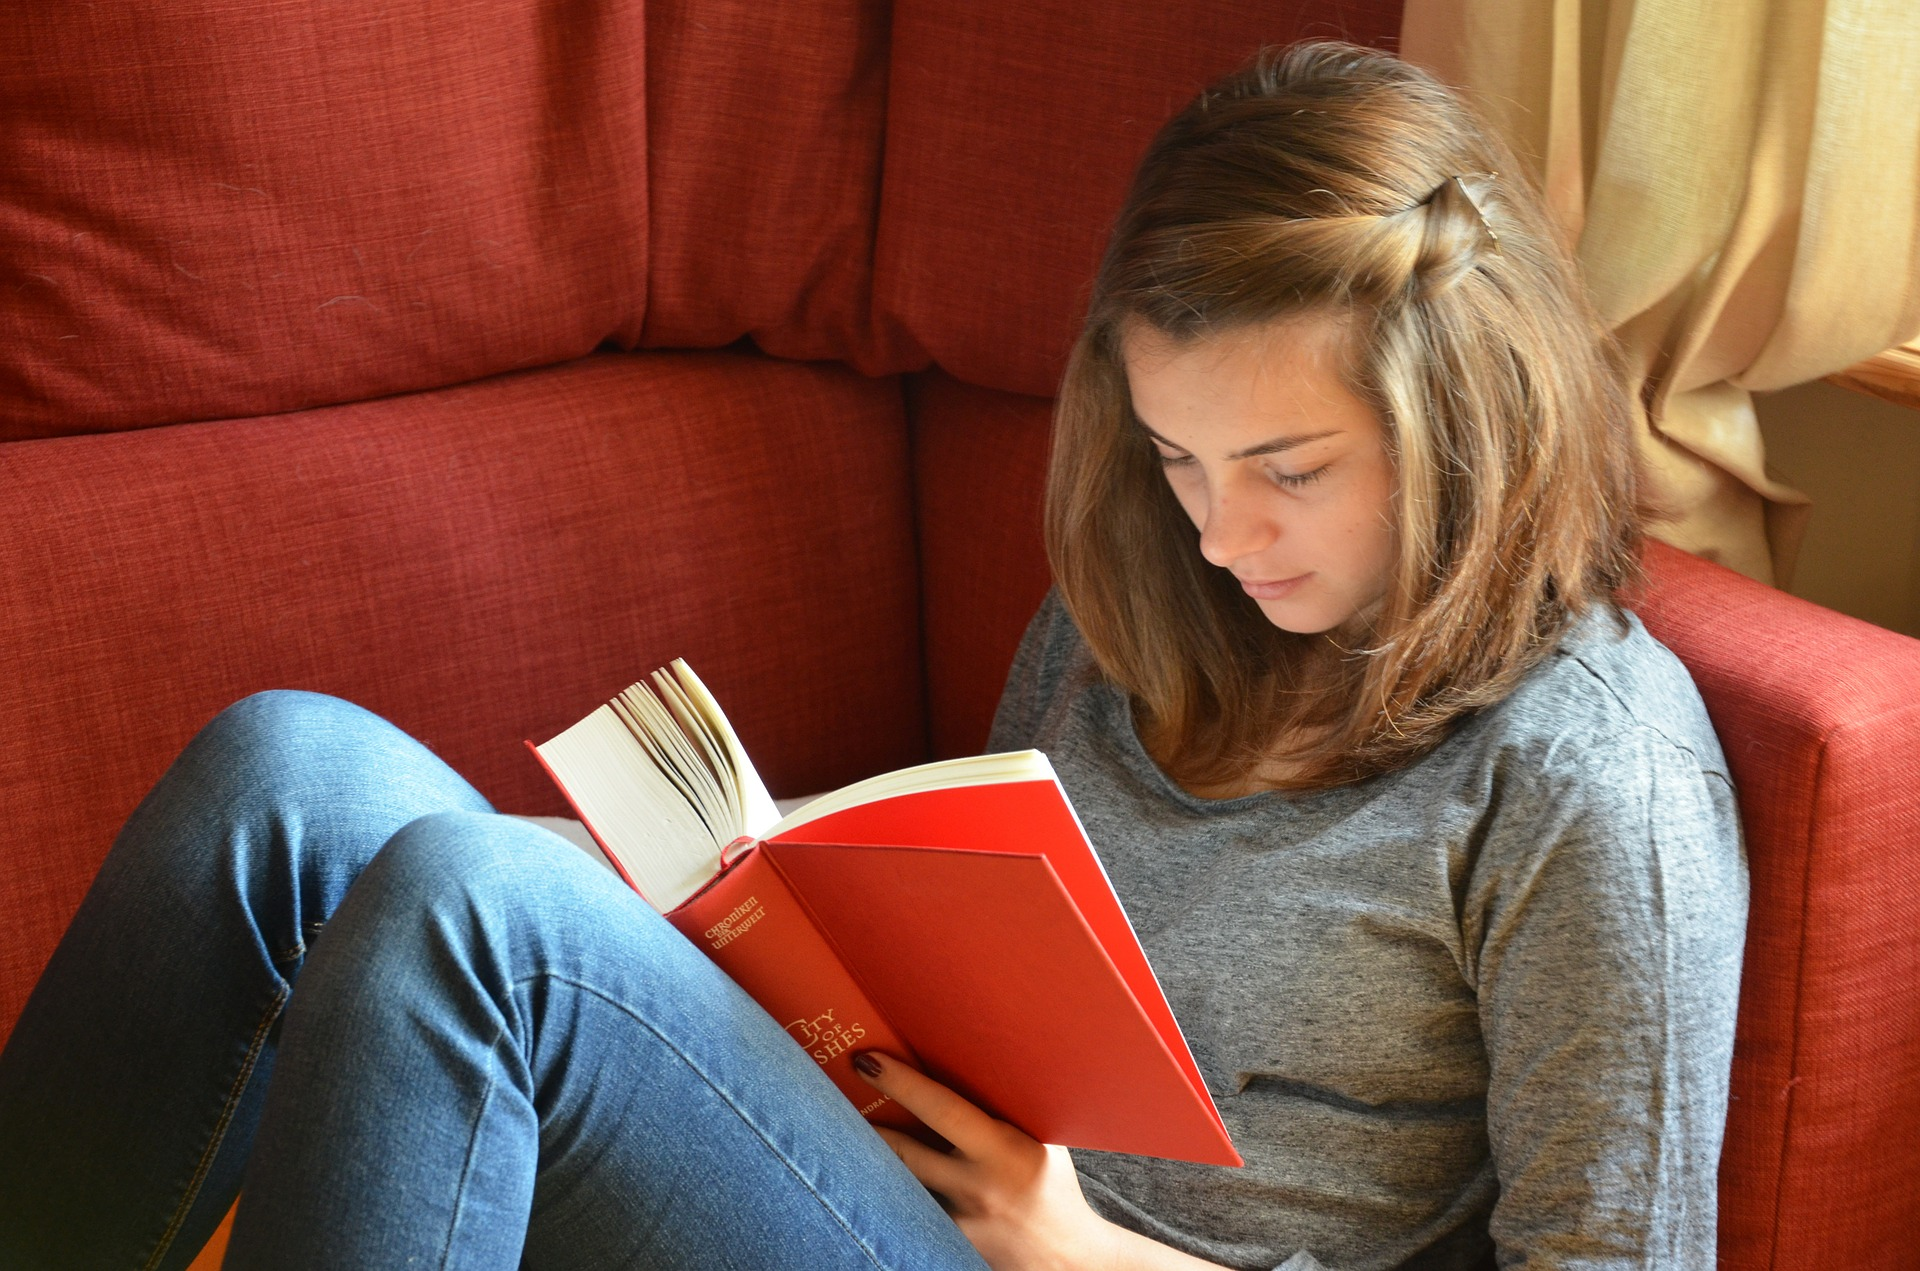 student reading book and thinking